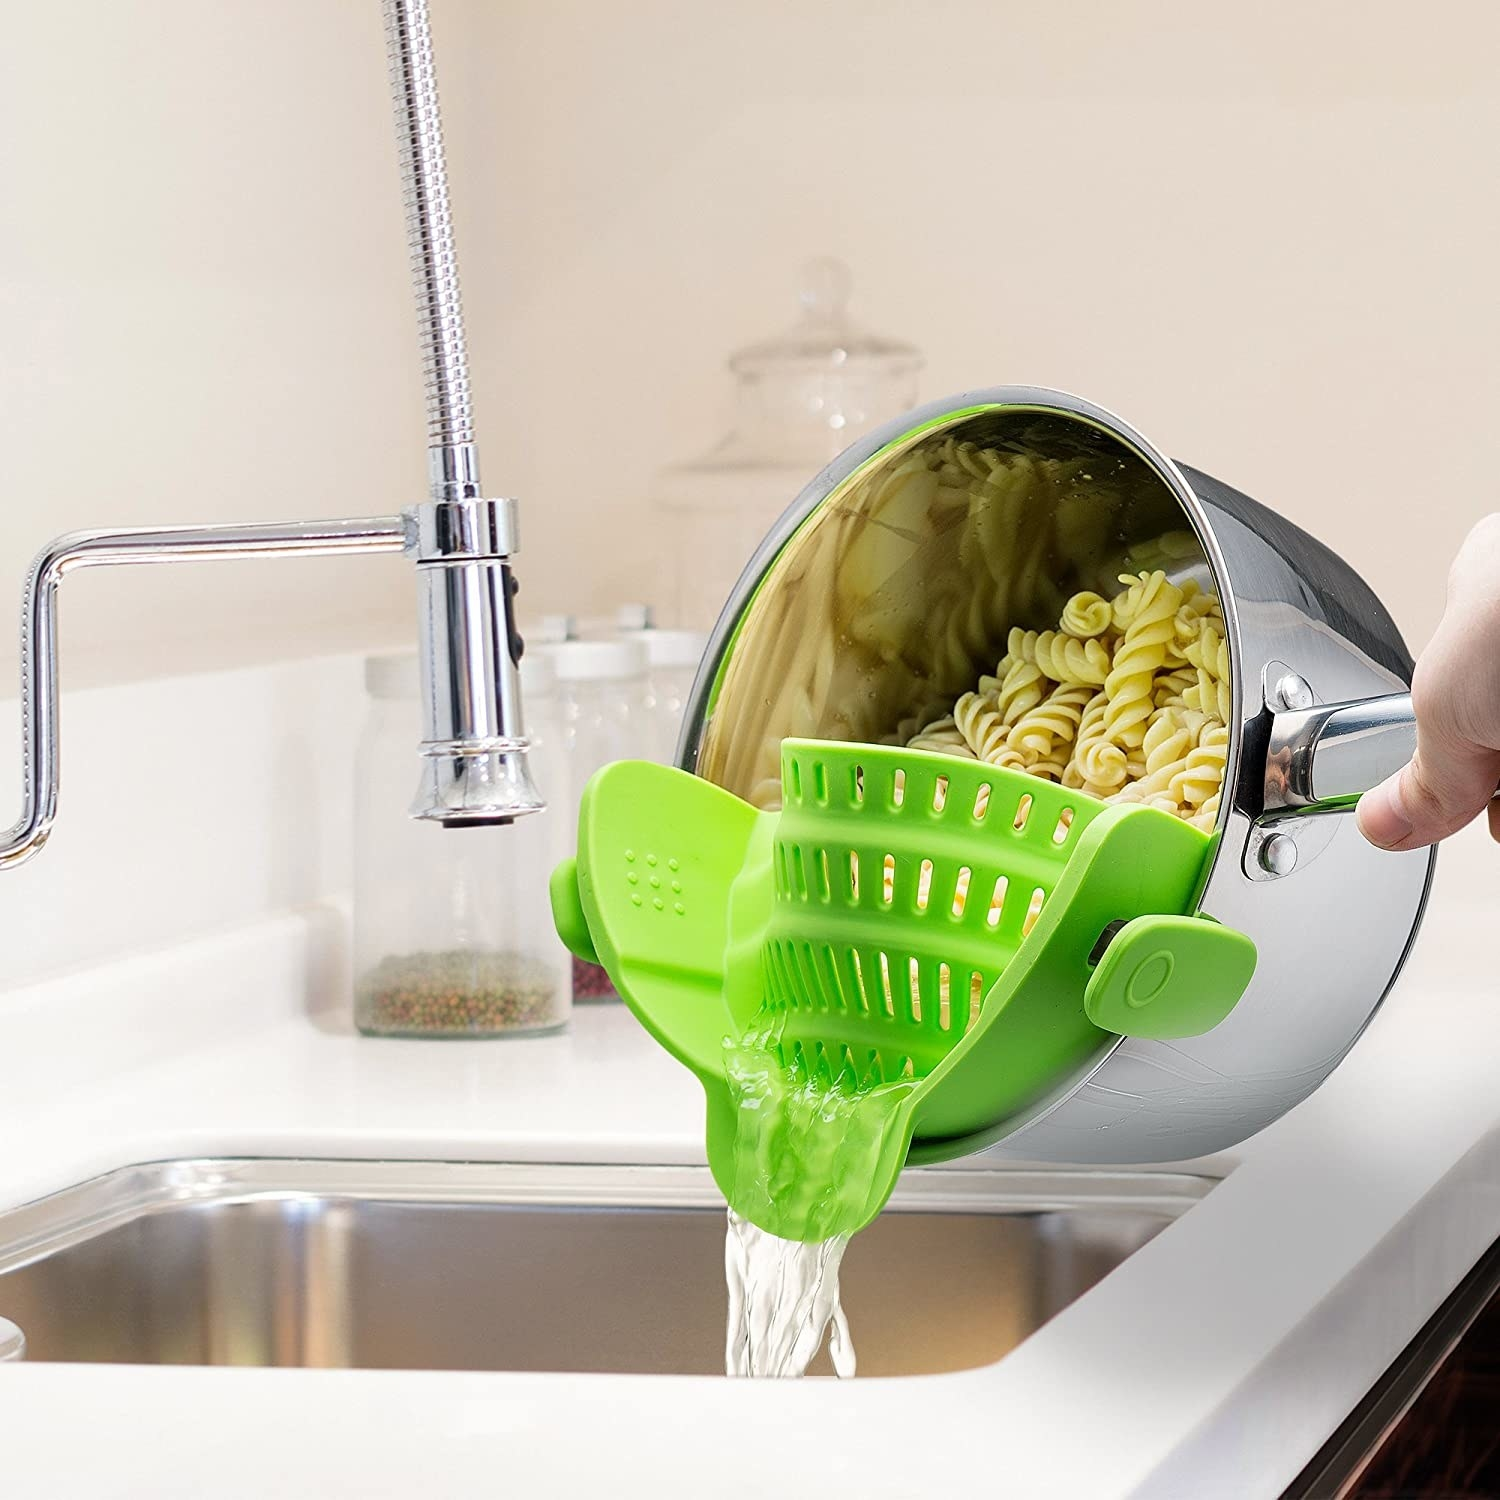 A person using the strainer to drain pasta over a sink